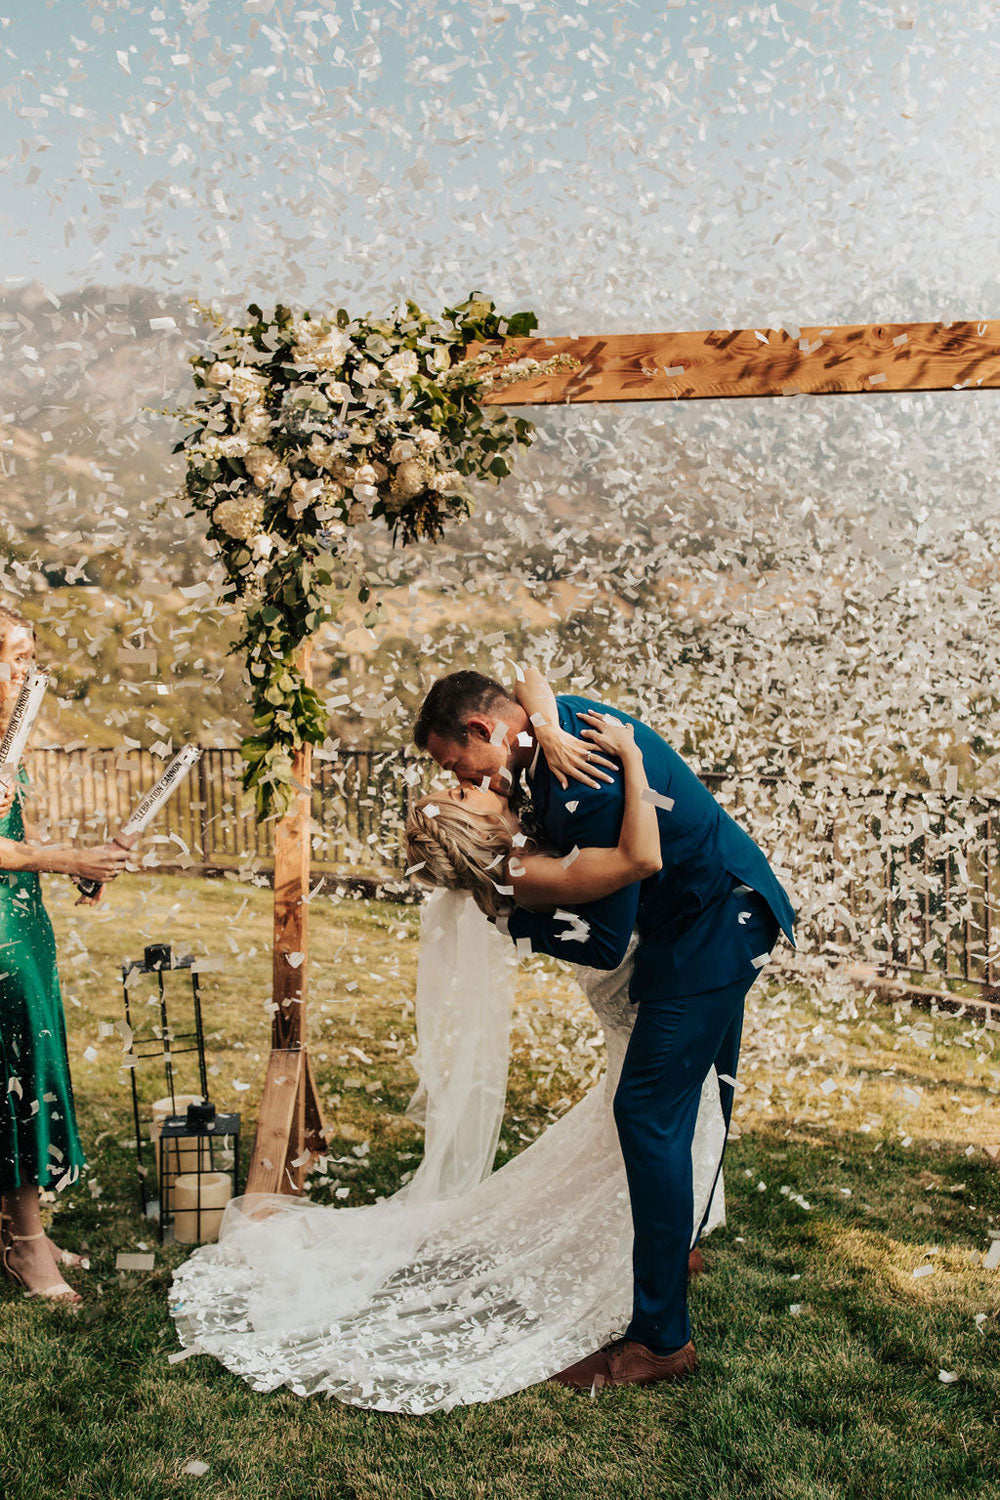 wedding with groom and bride kissing with confetti